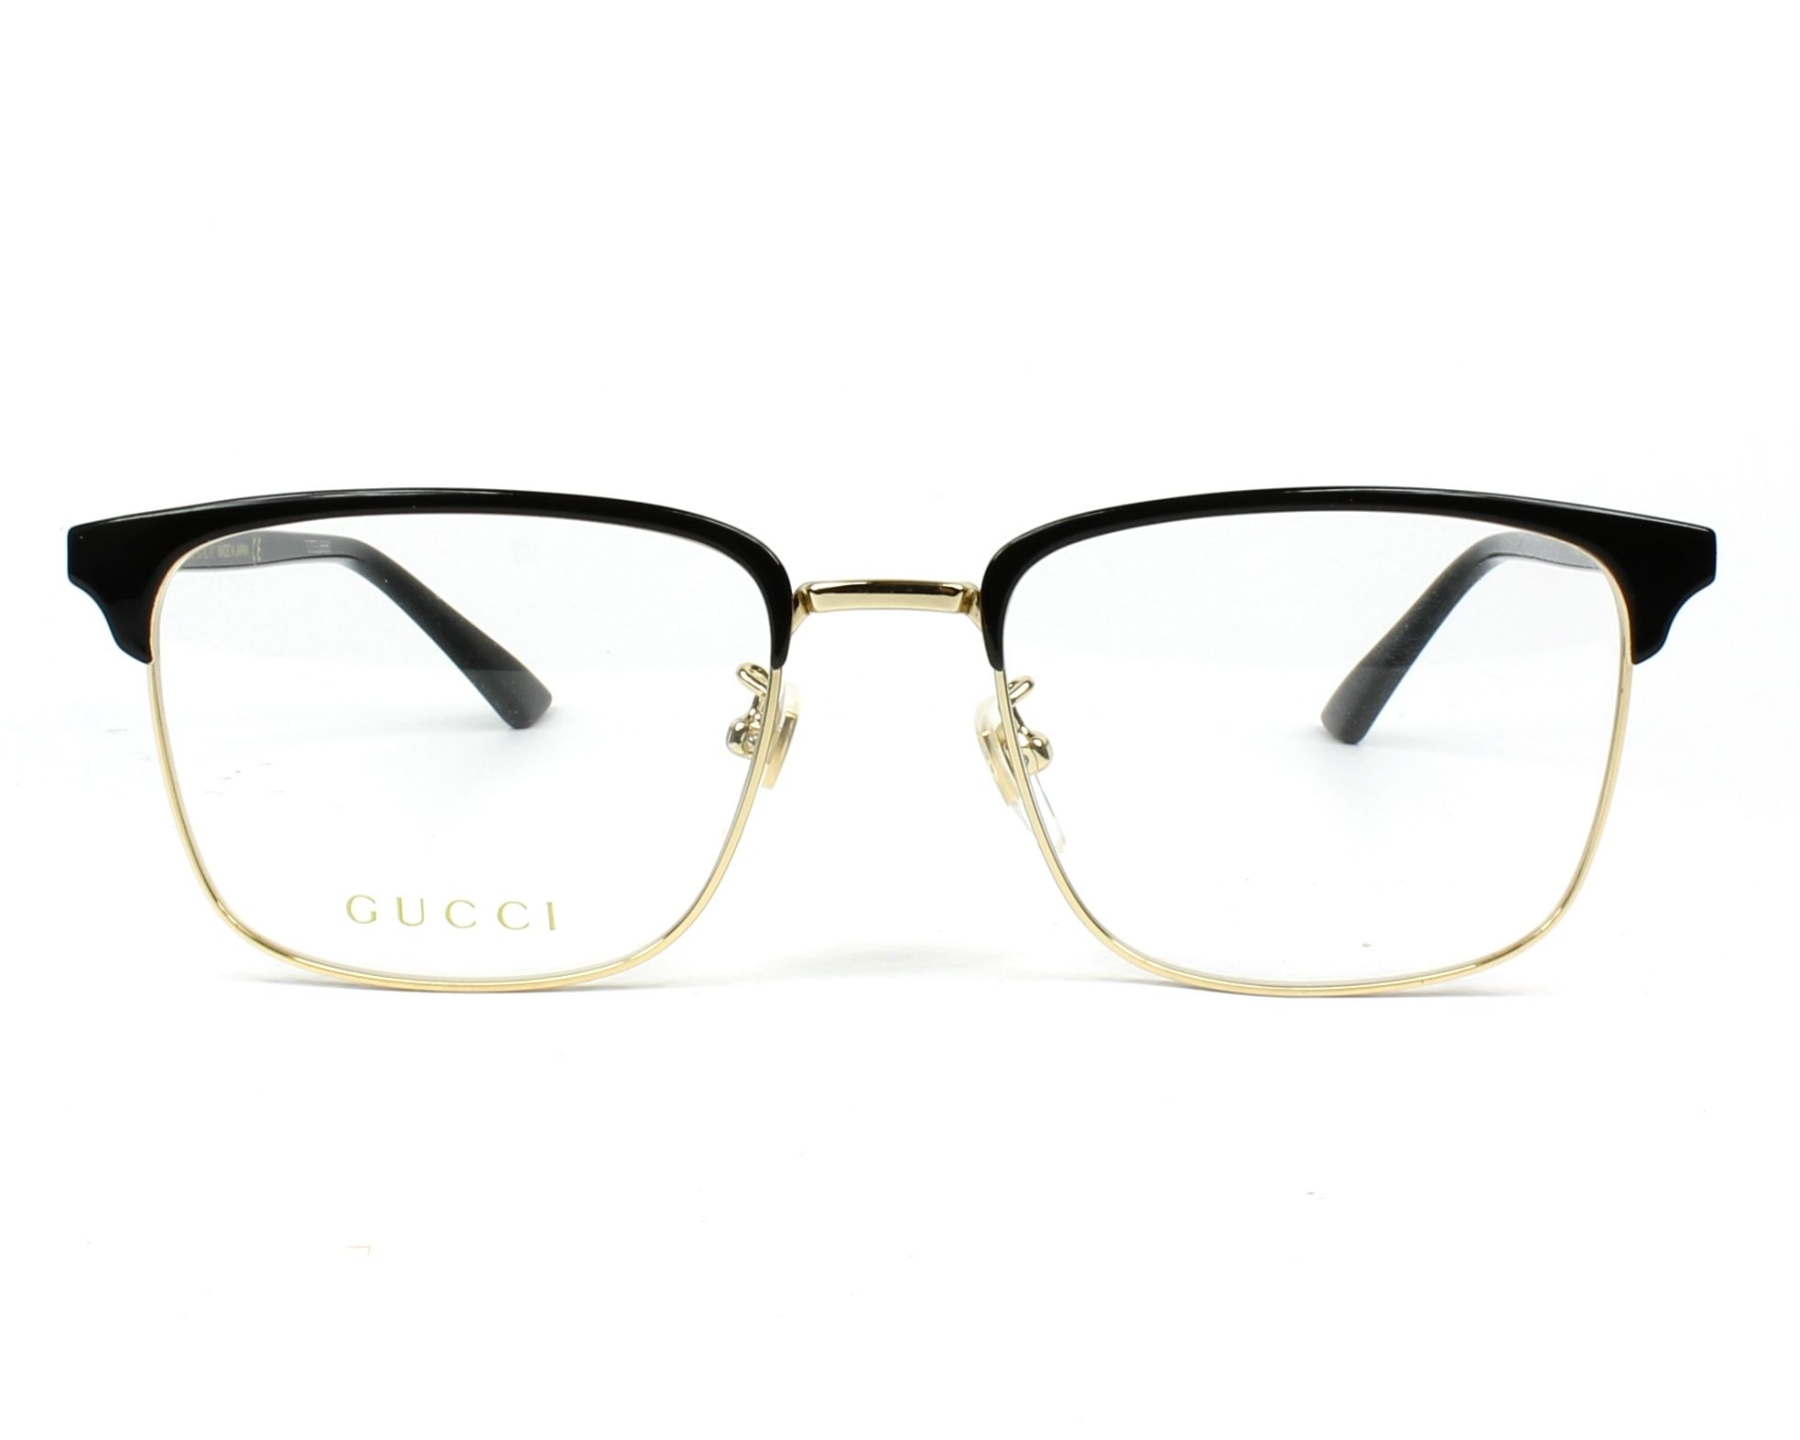 Gucci Eyeglasses GG-01300 001 Black - Visionet UK